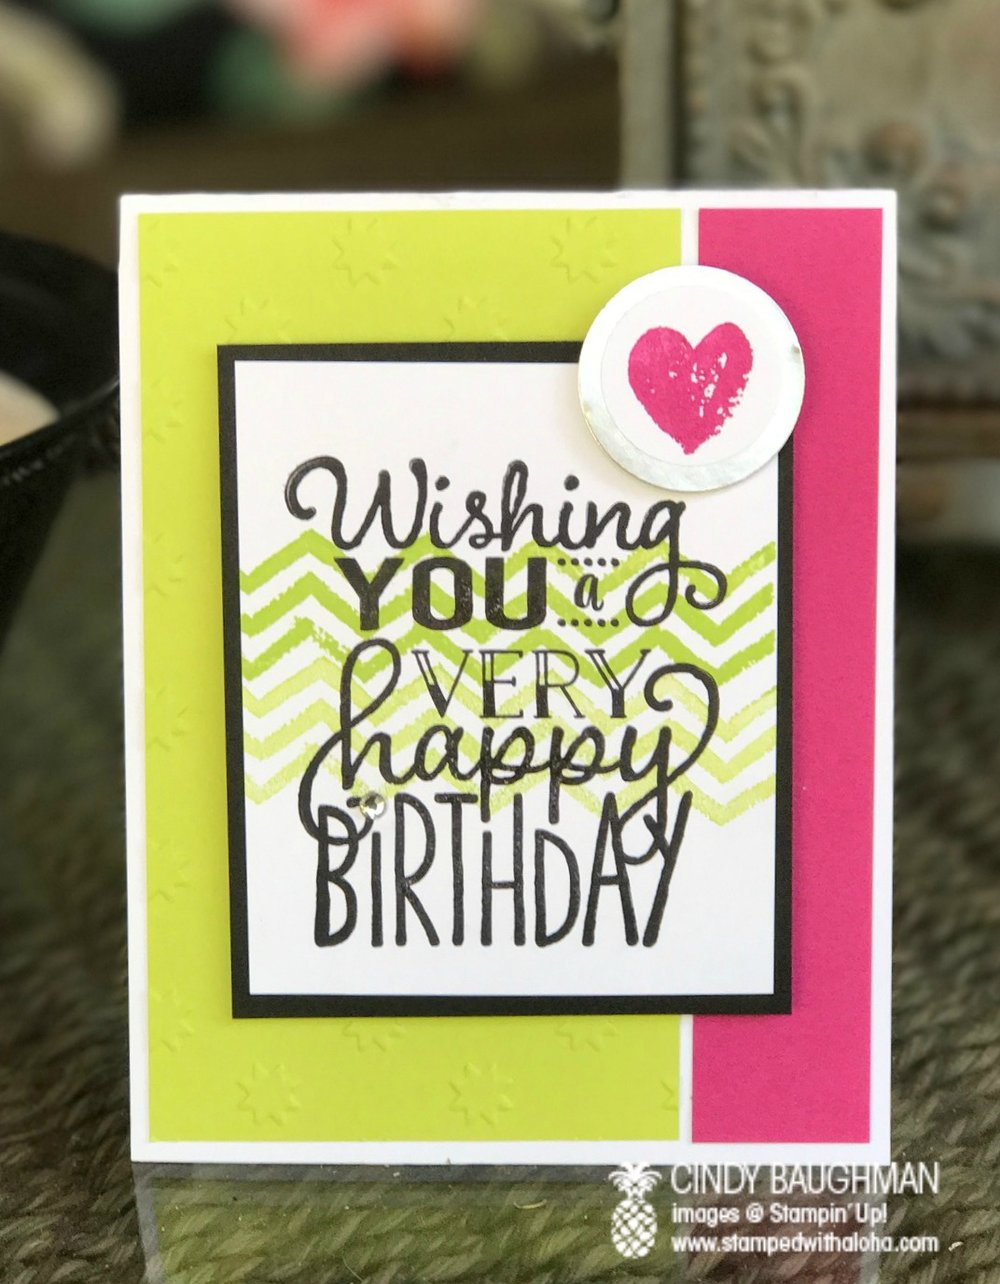 Big On Birthdays Card - www.stampedwithaloha.com